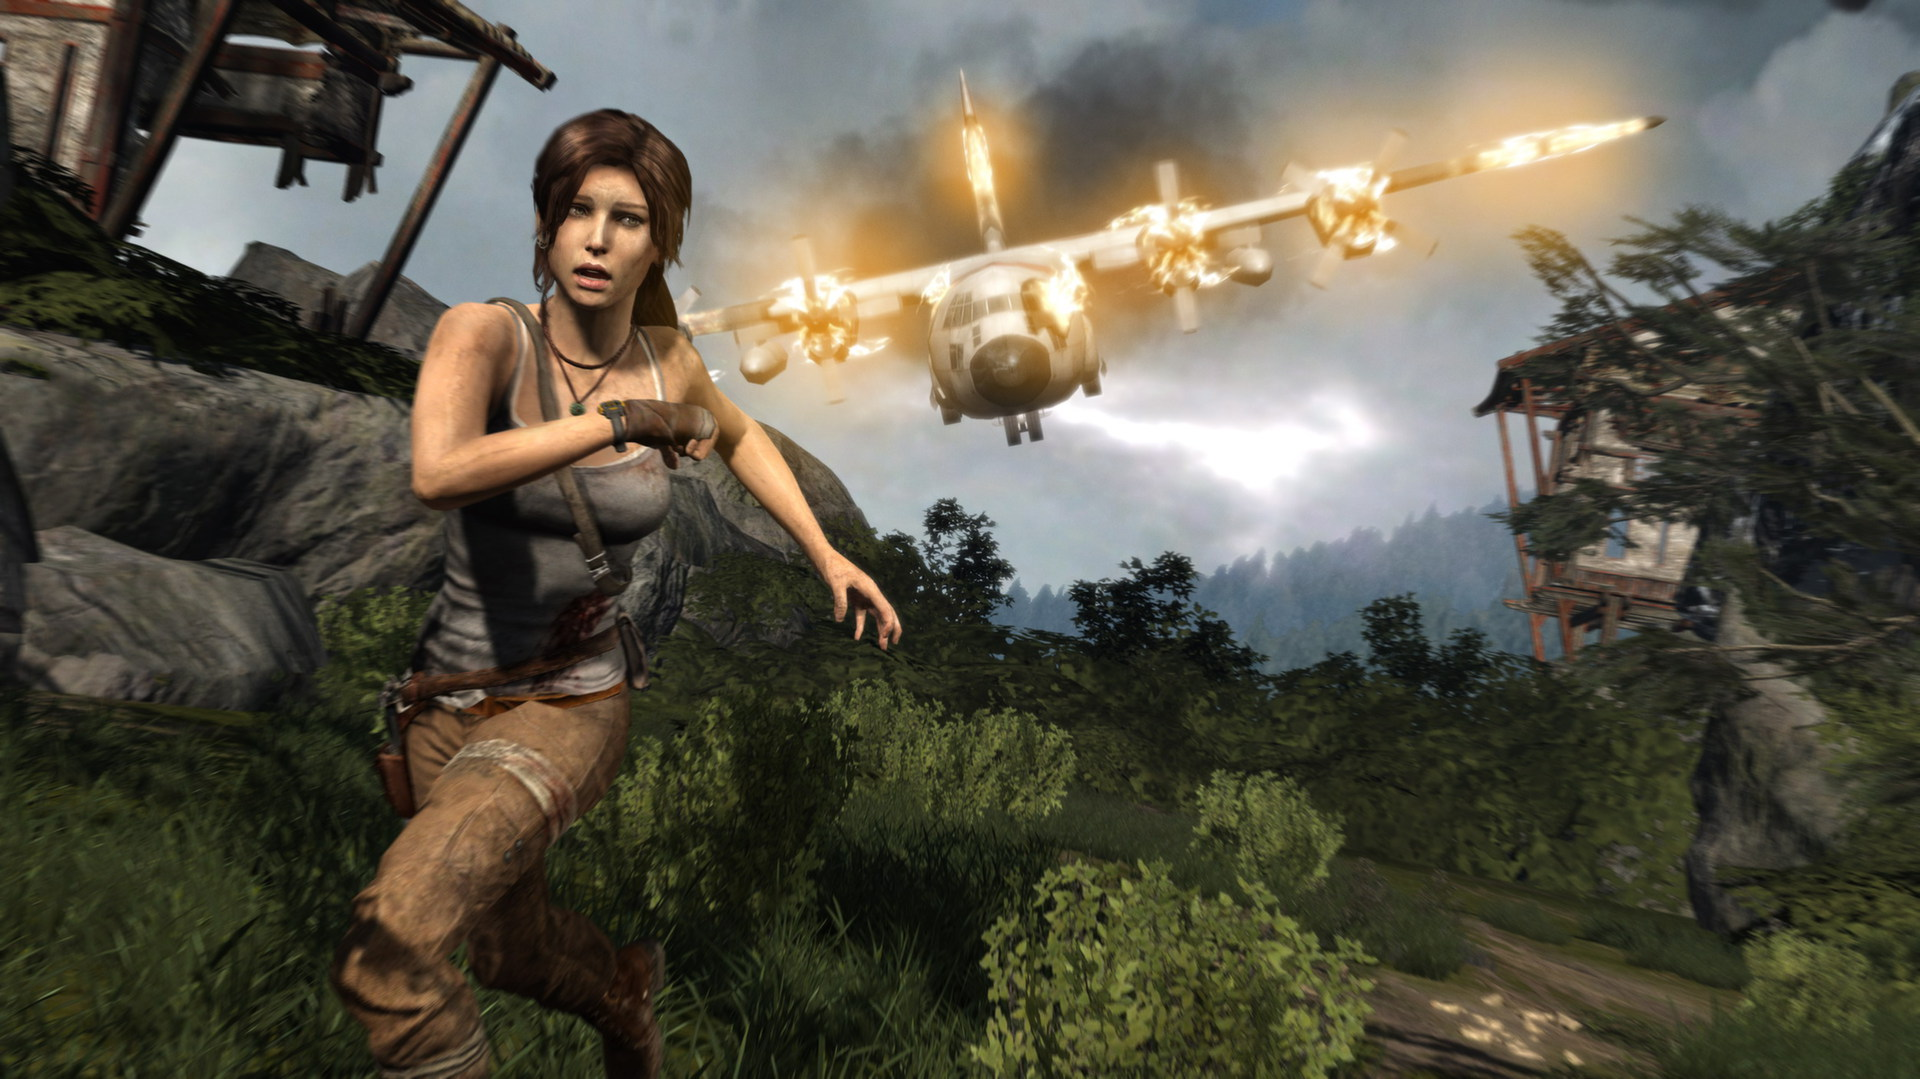 Find the best laptop for Tomb Raider